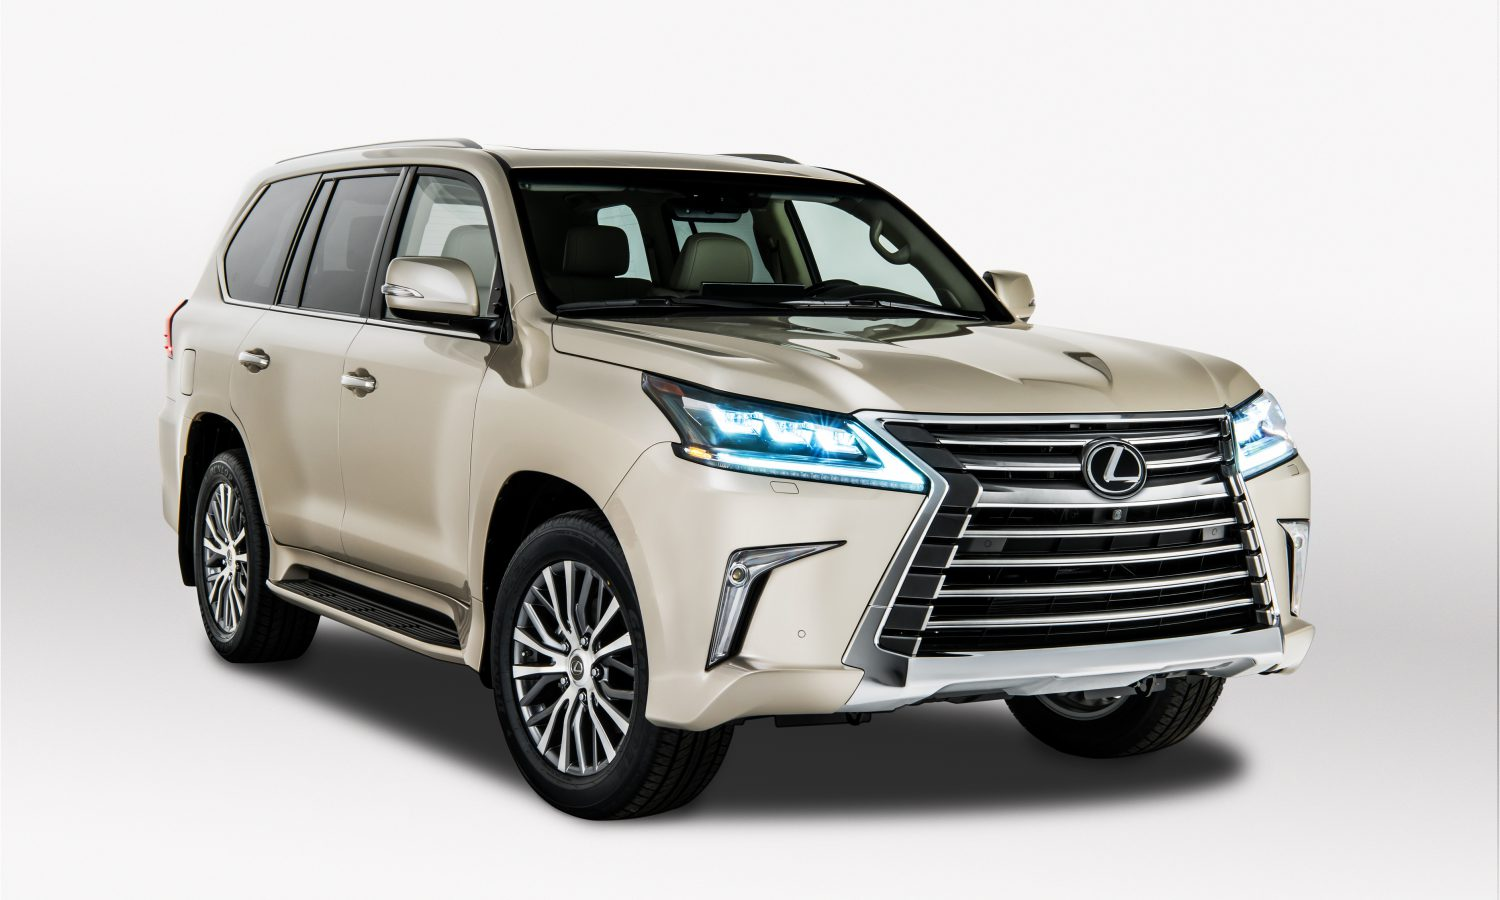 Adventurers Get More Cargo Space with Lexus' New Two-Row Version of LX 570